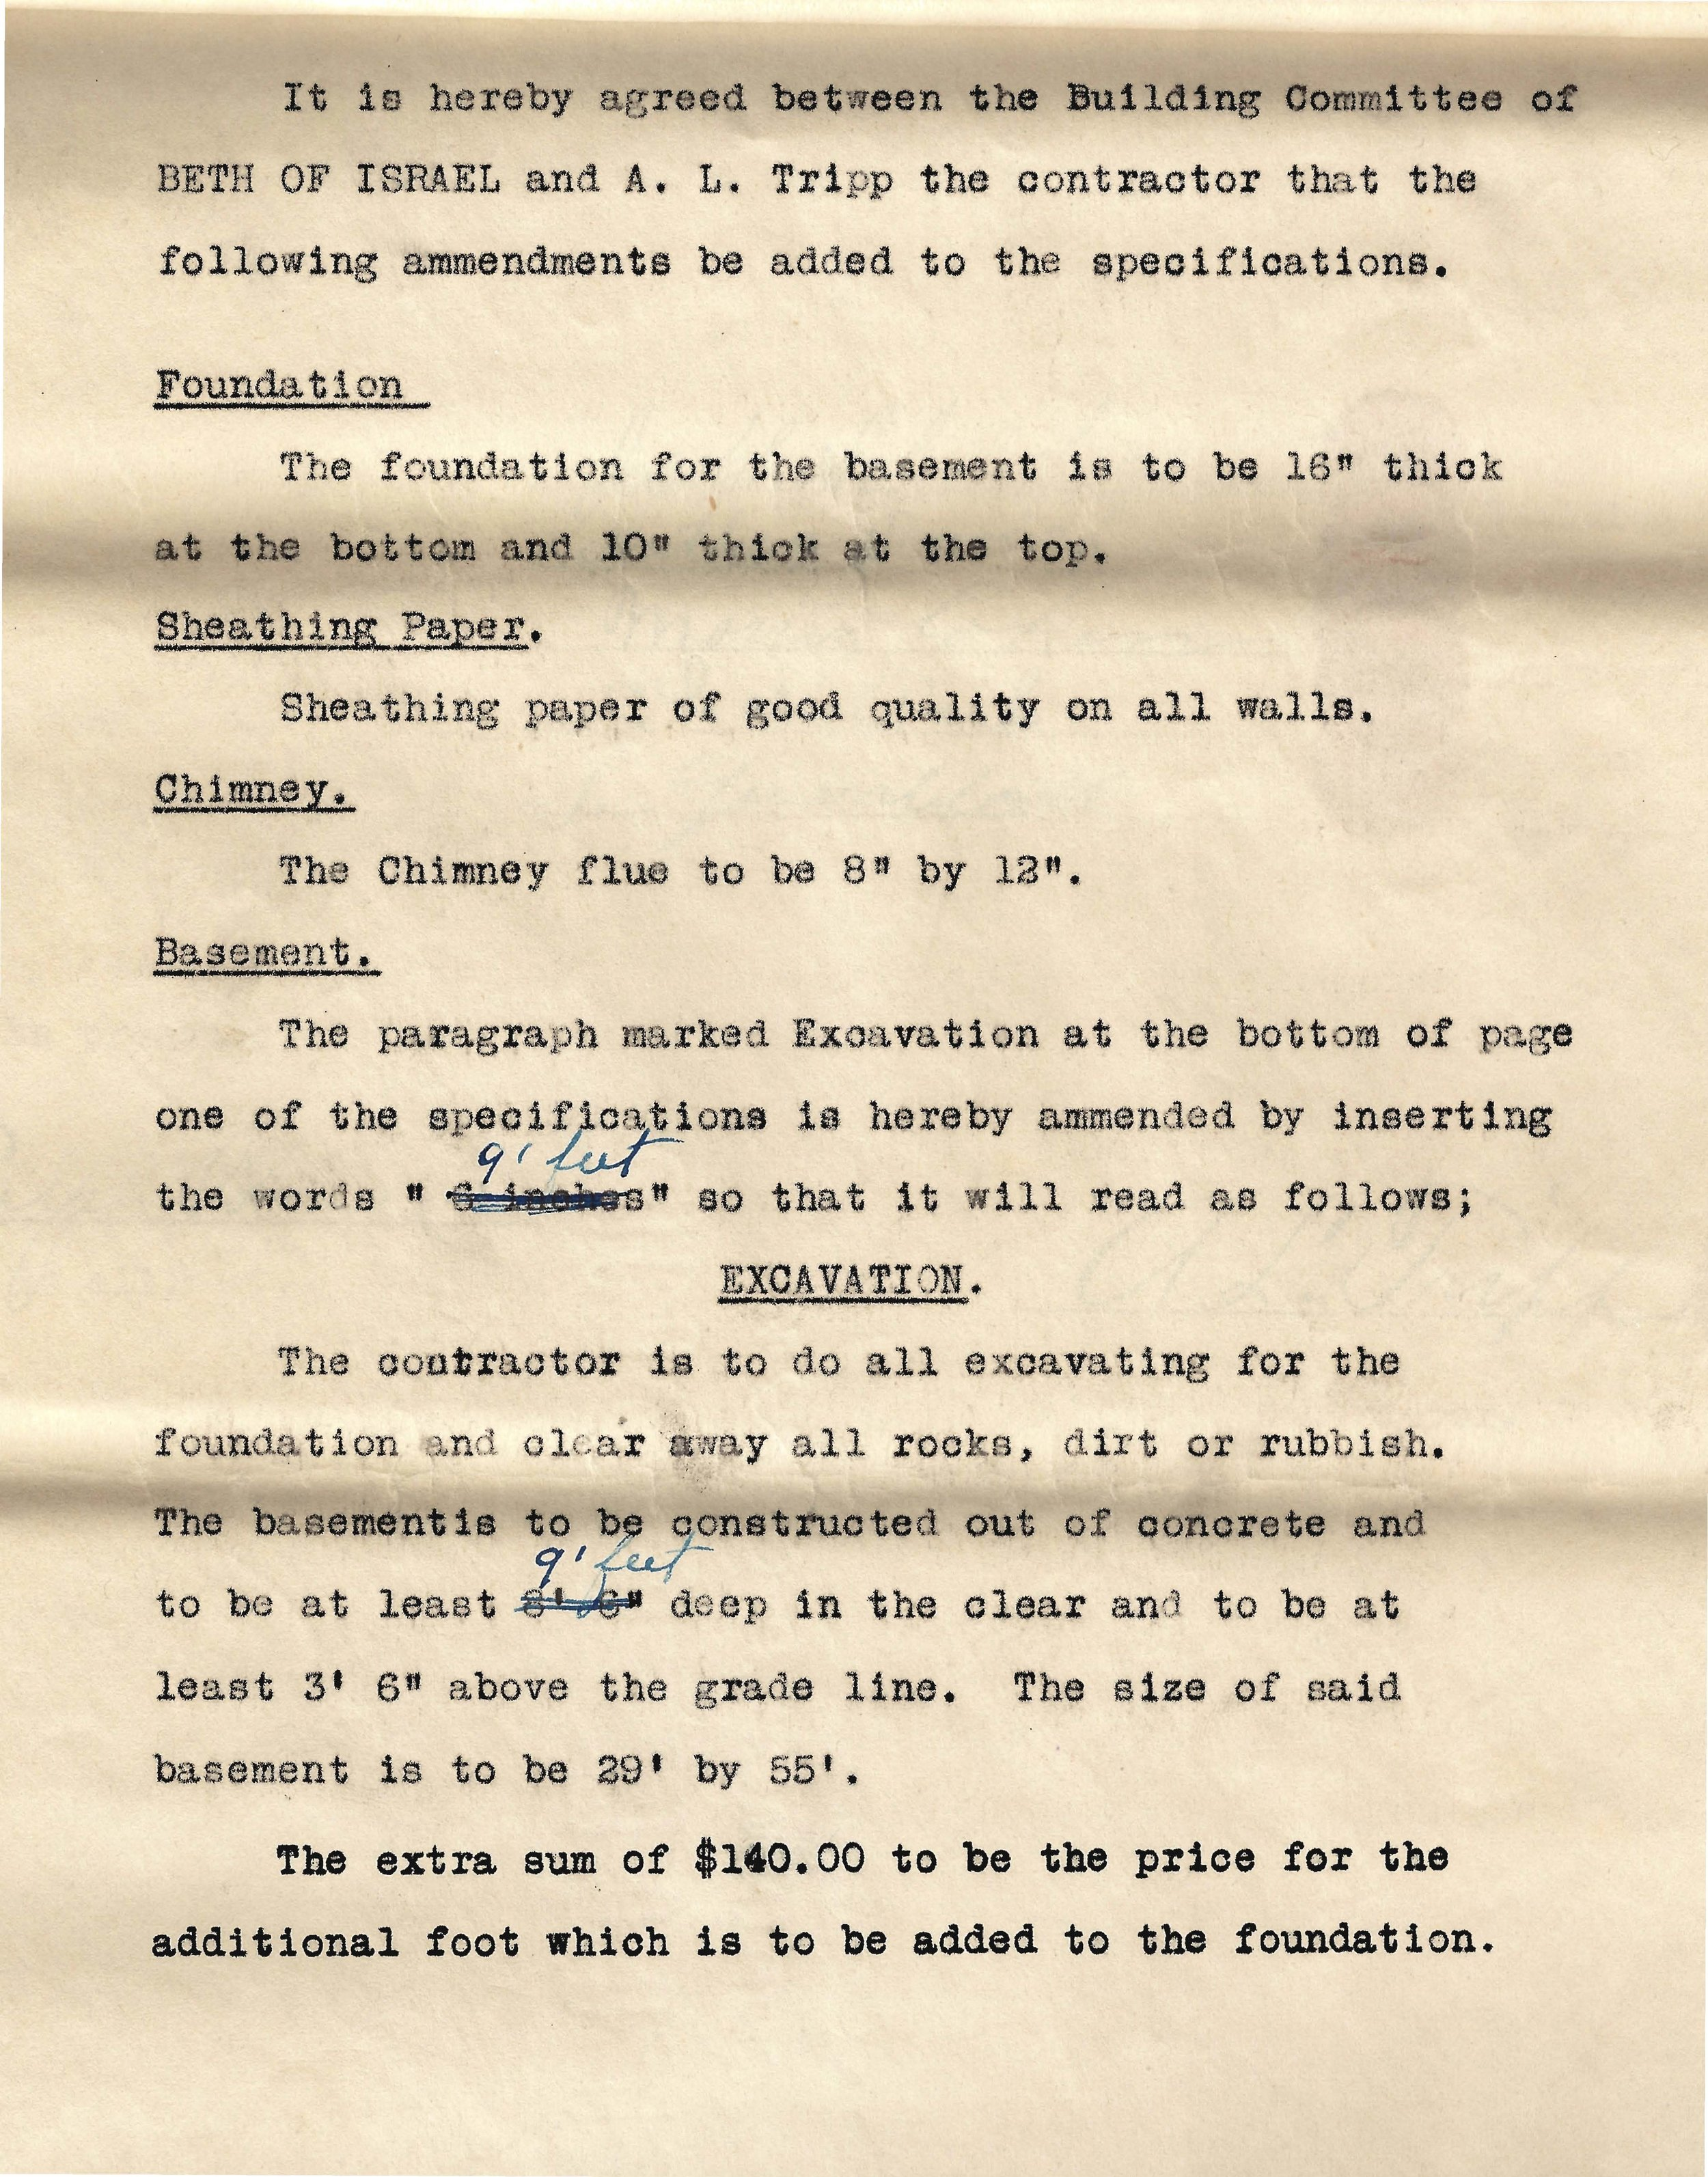 Contractor Agreement (1921)_Page_11.jpg